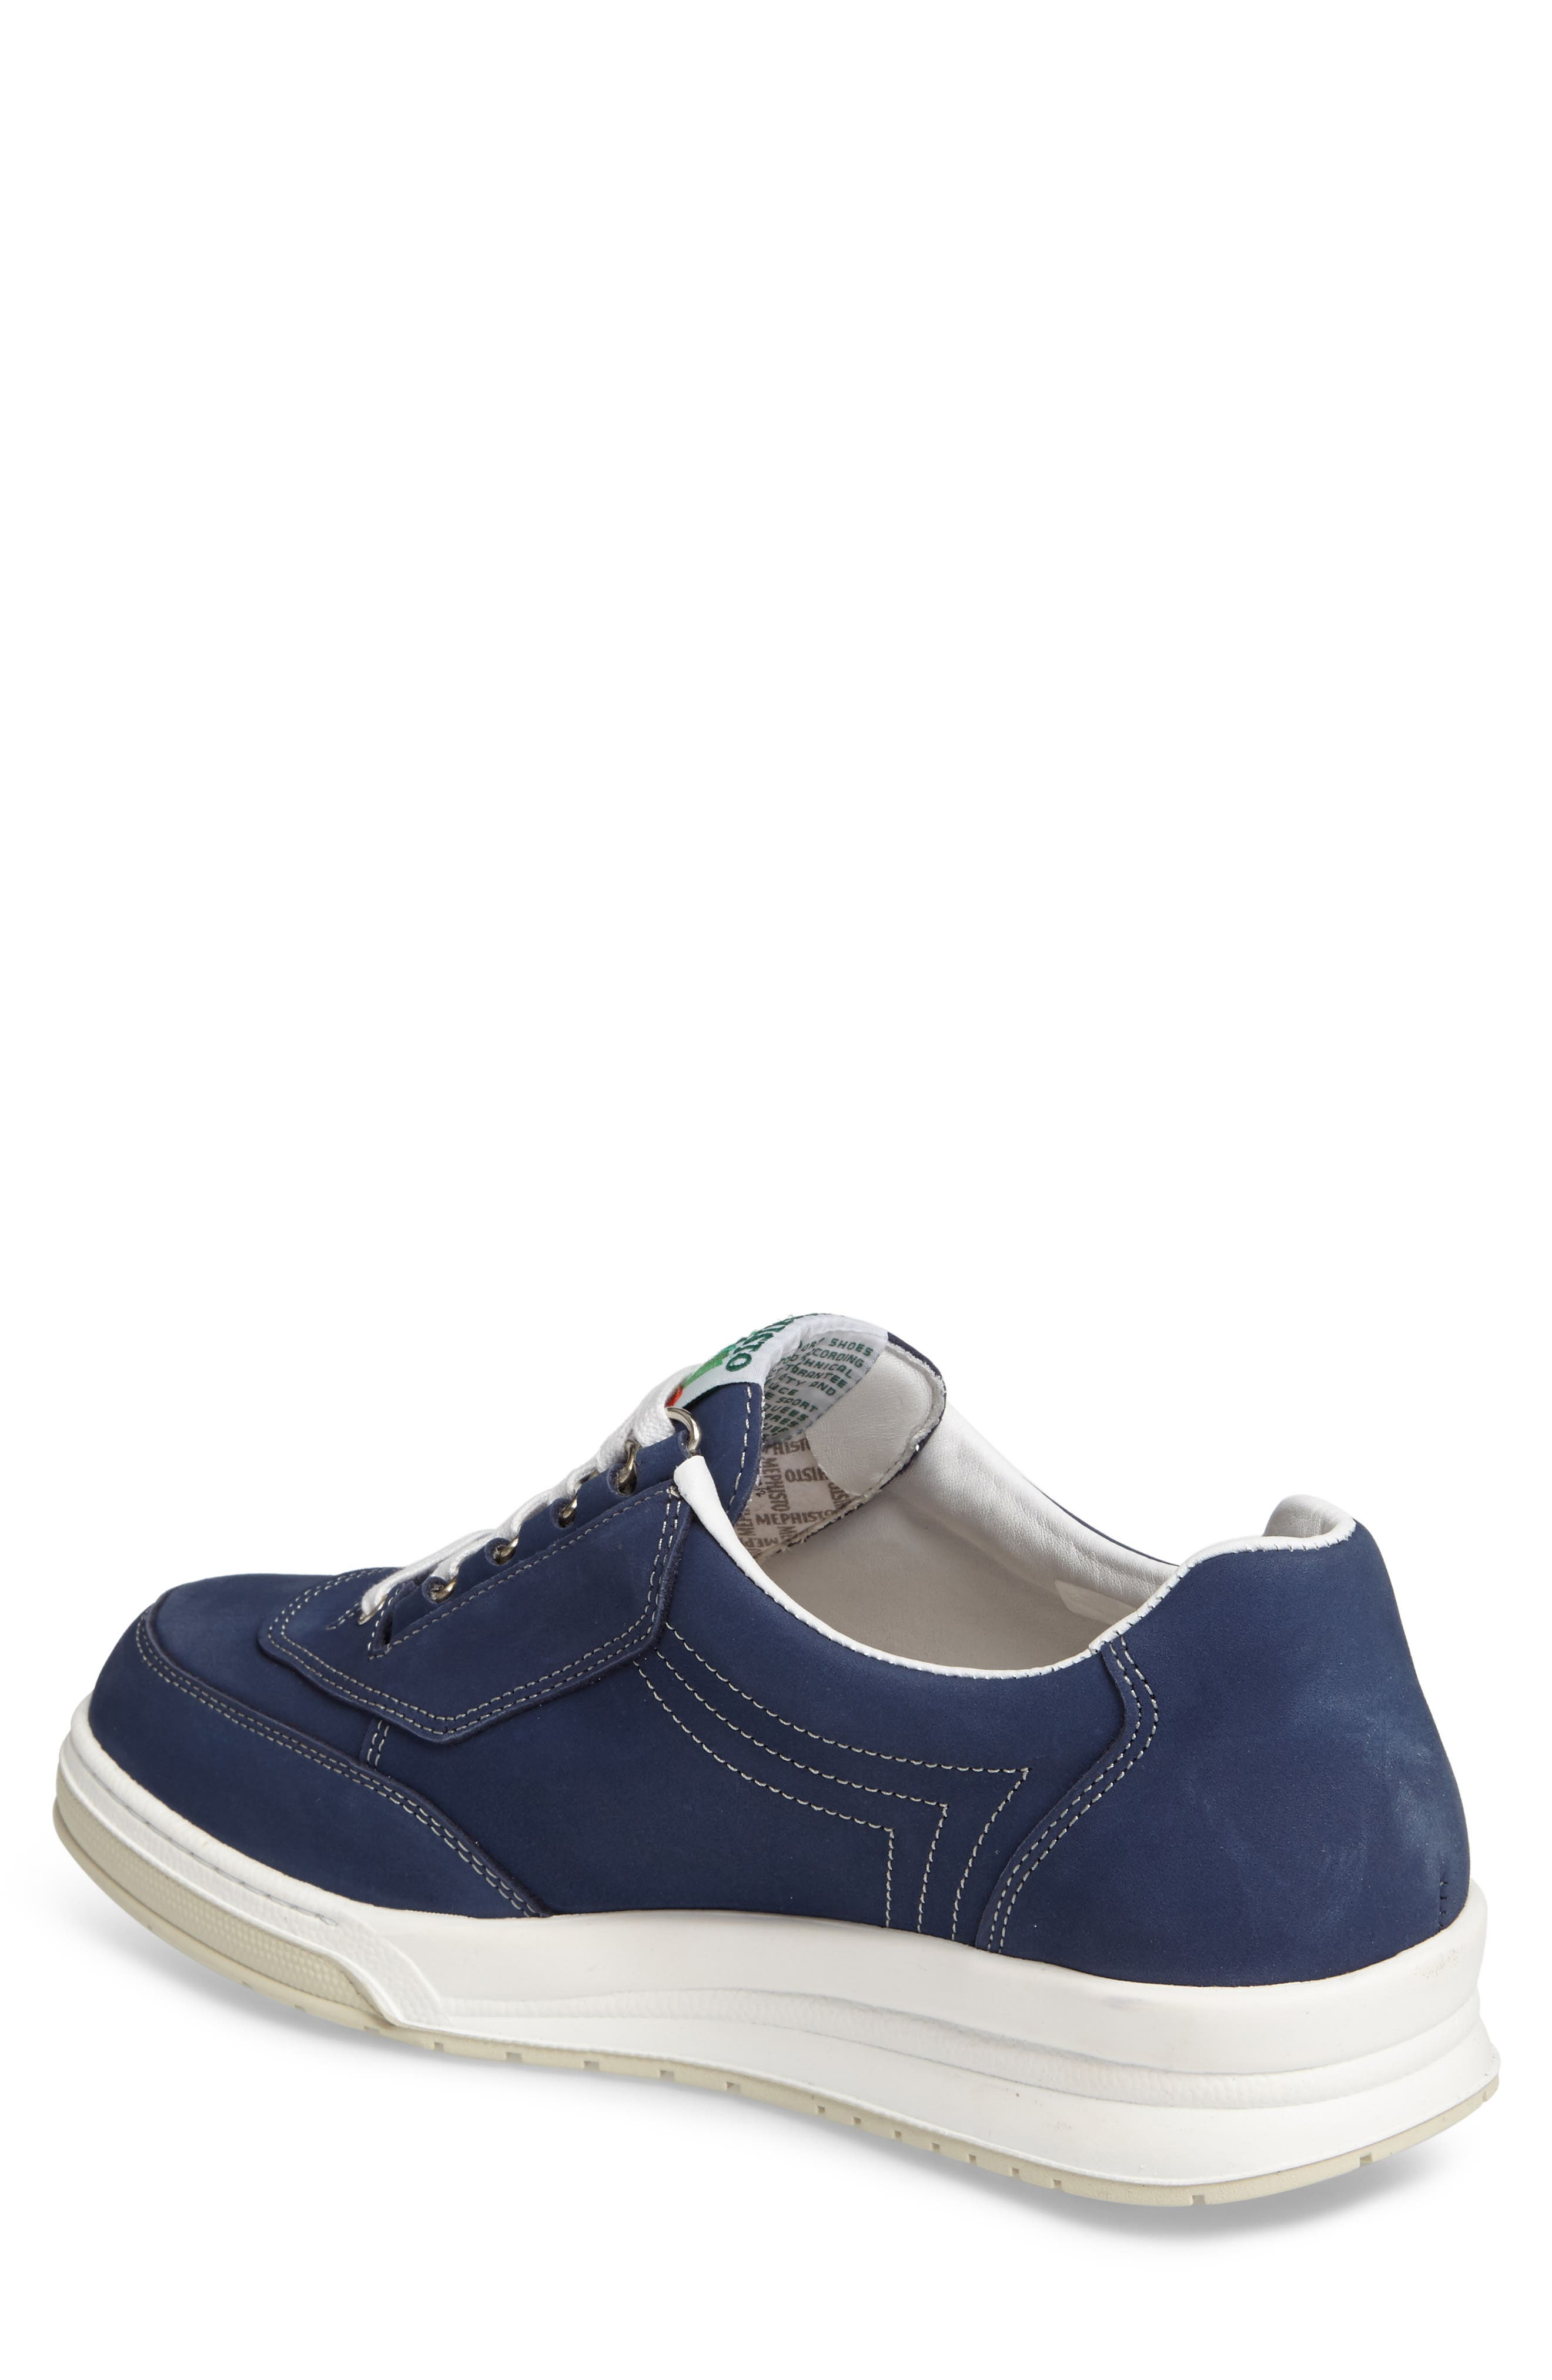 Alternate Image 2  - Mephisto 'Match' Walking Shoe (Men)